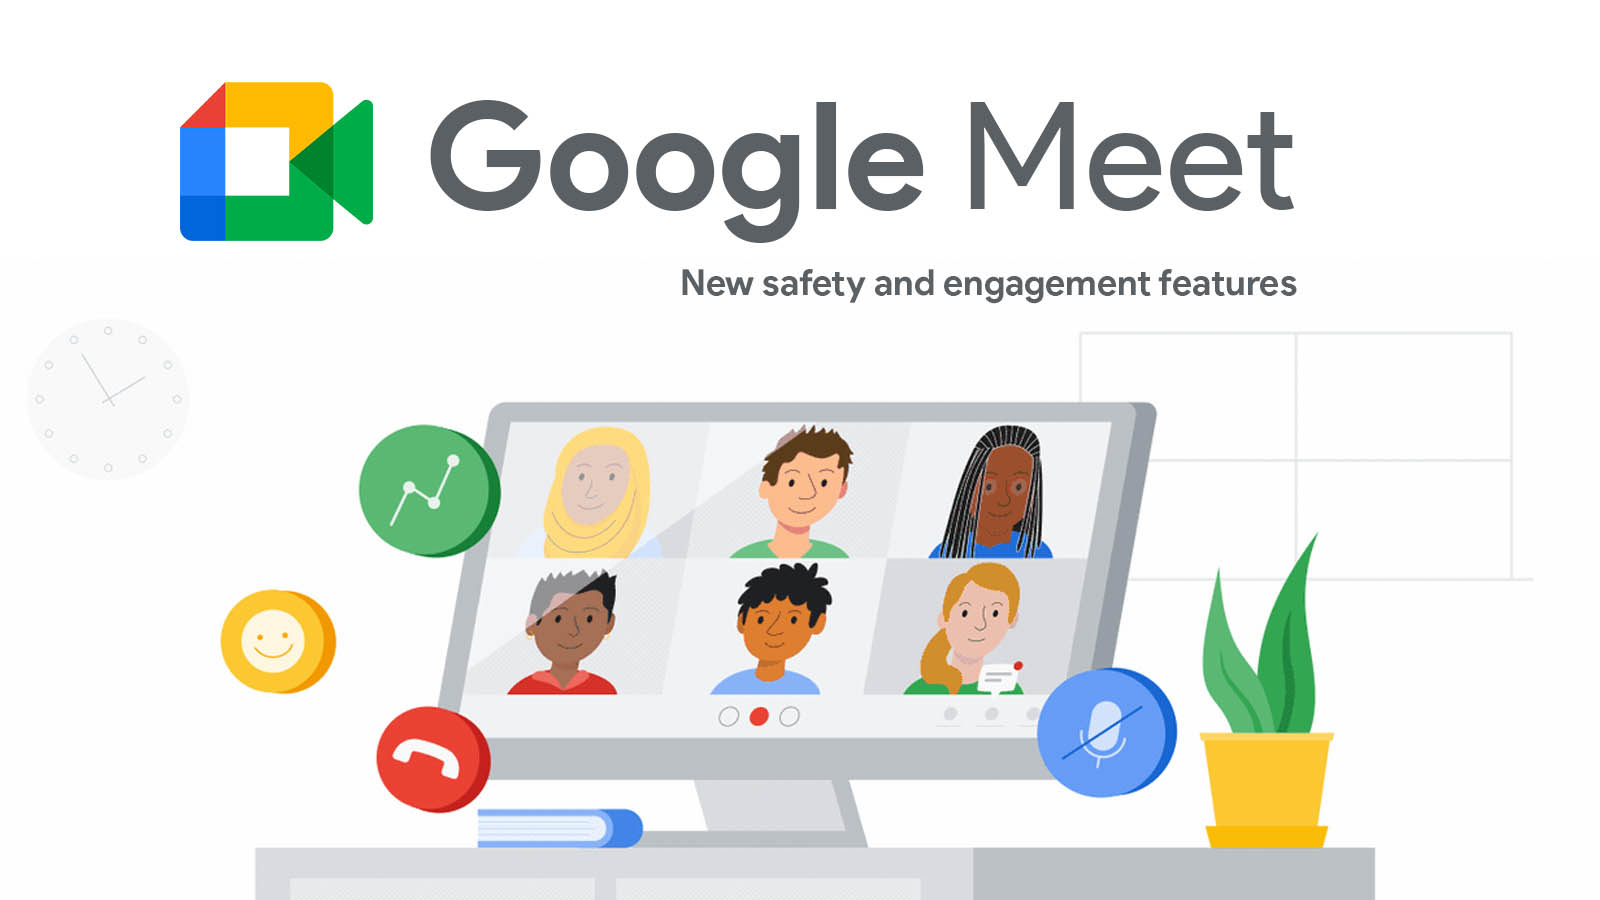 Google Meet is adding new safety and engagement features to support distanced learning